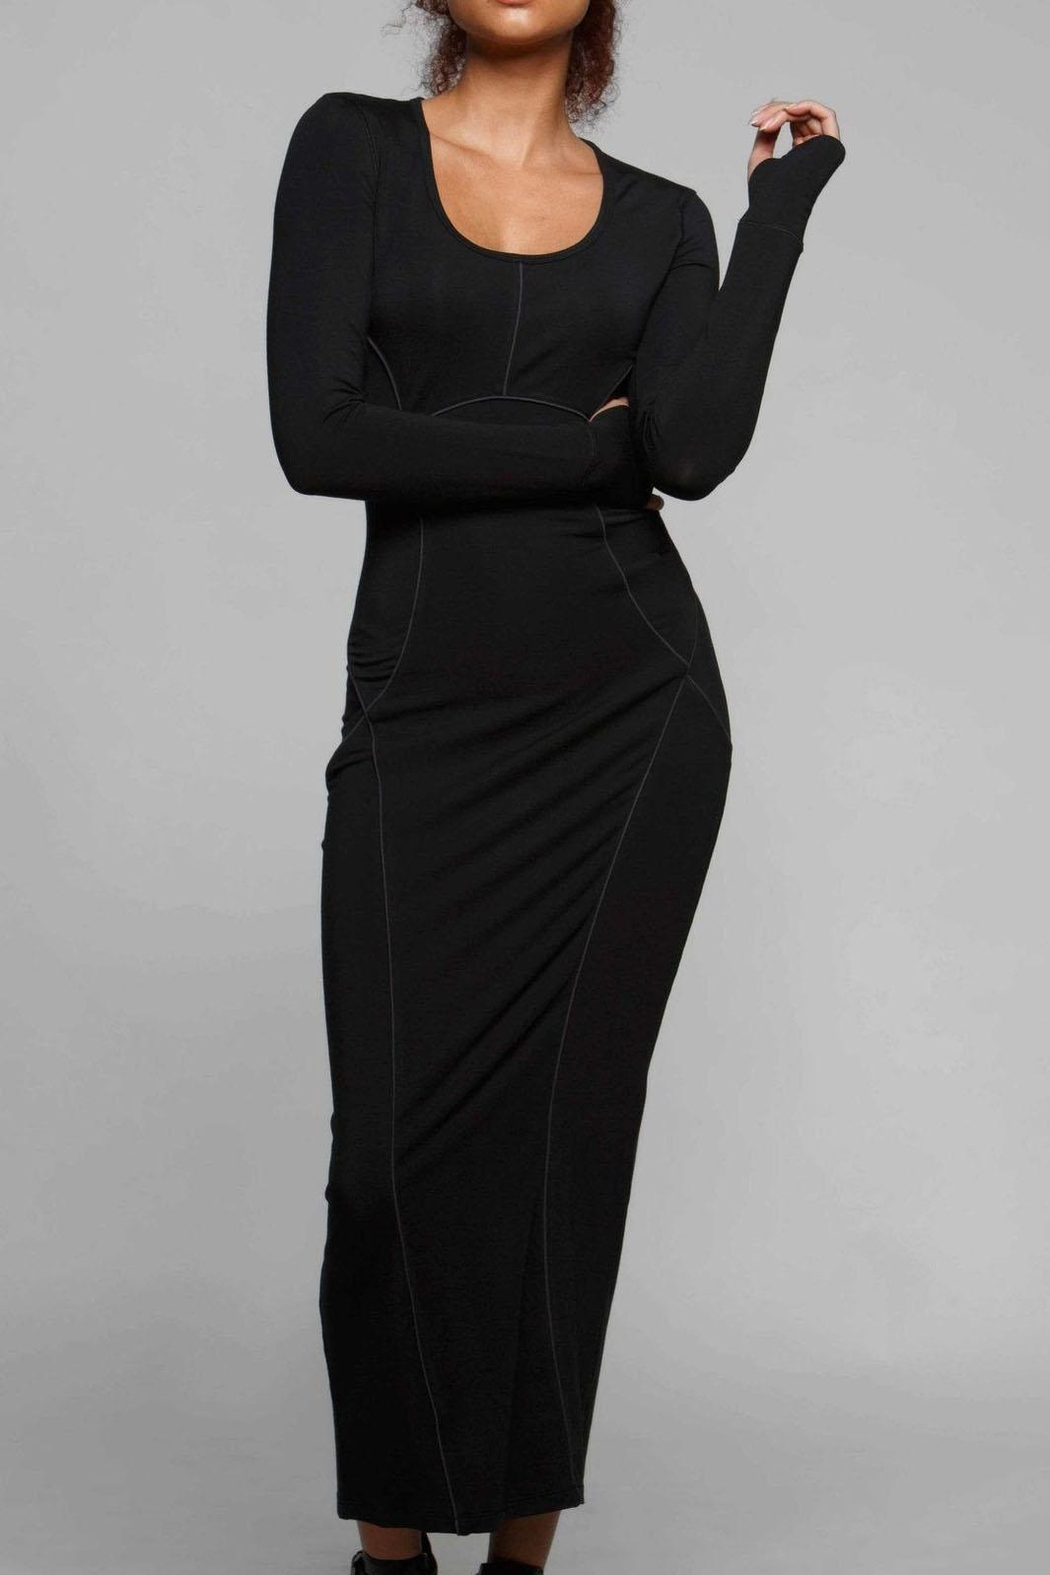 Titika Active Couture Camilia Maxi Dress - Front Cropped Image